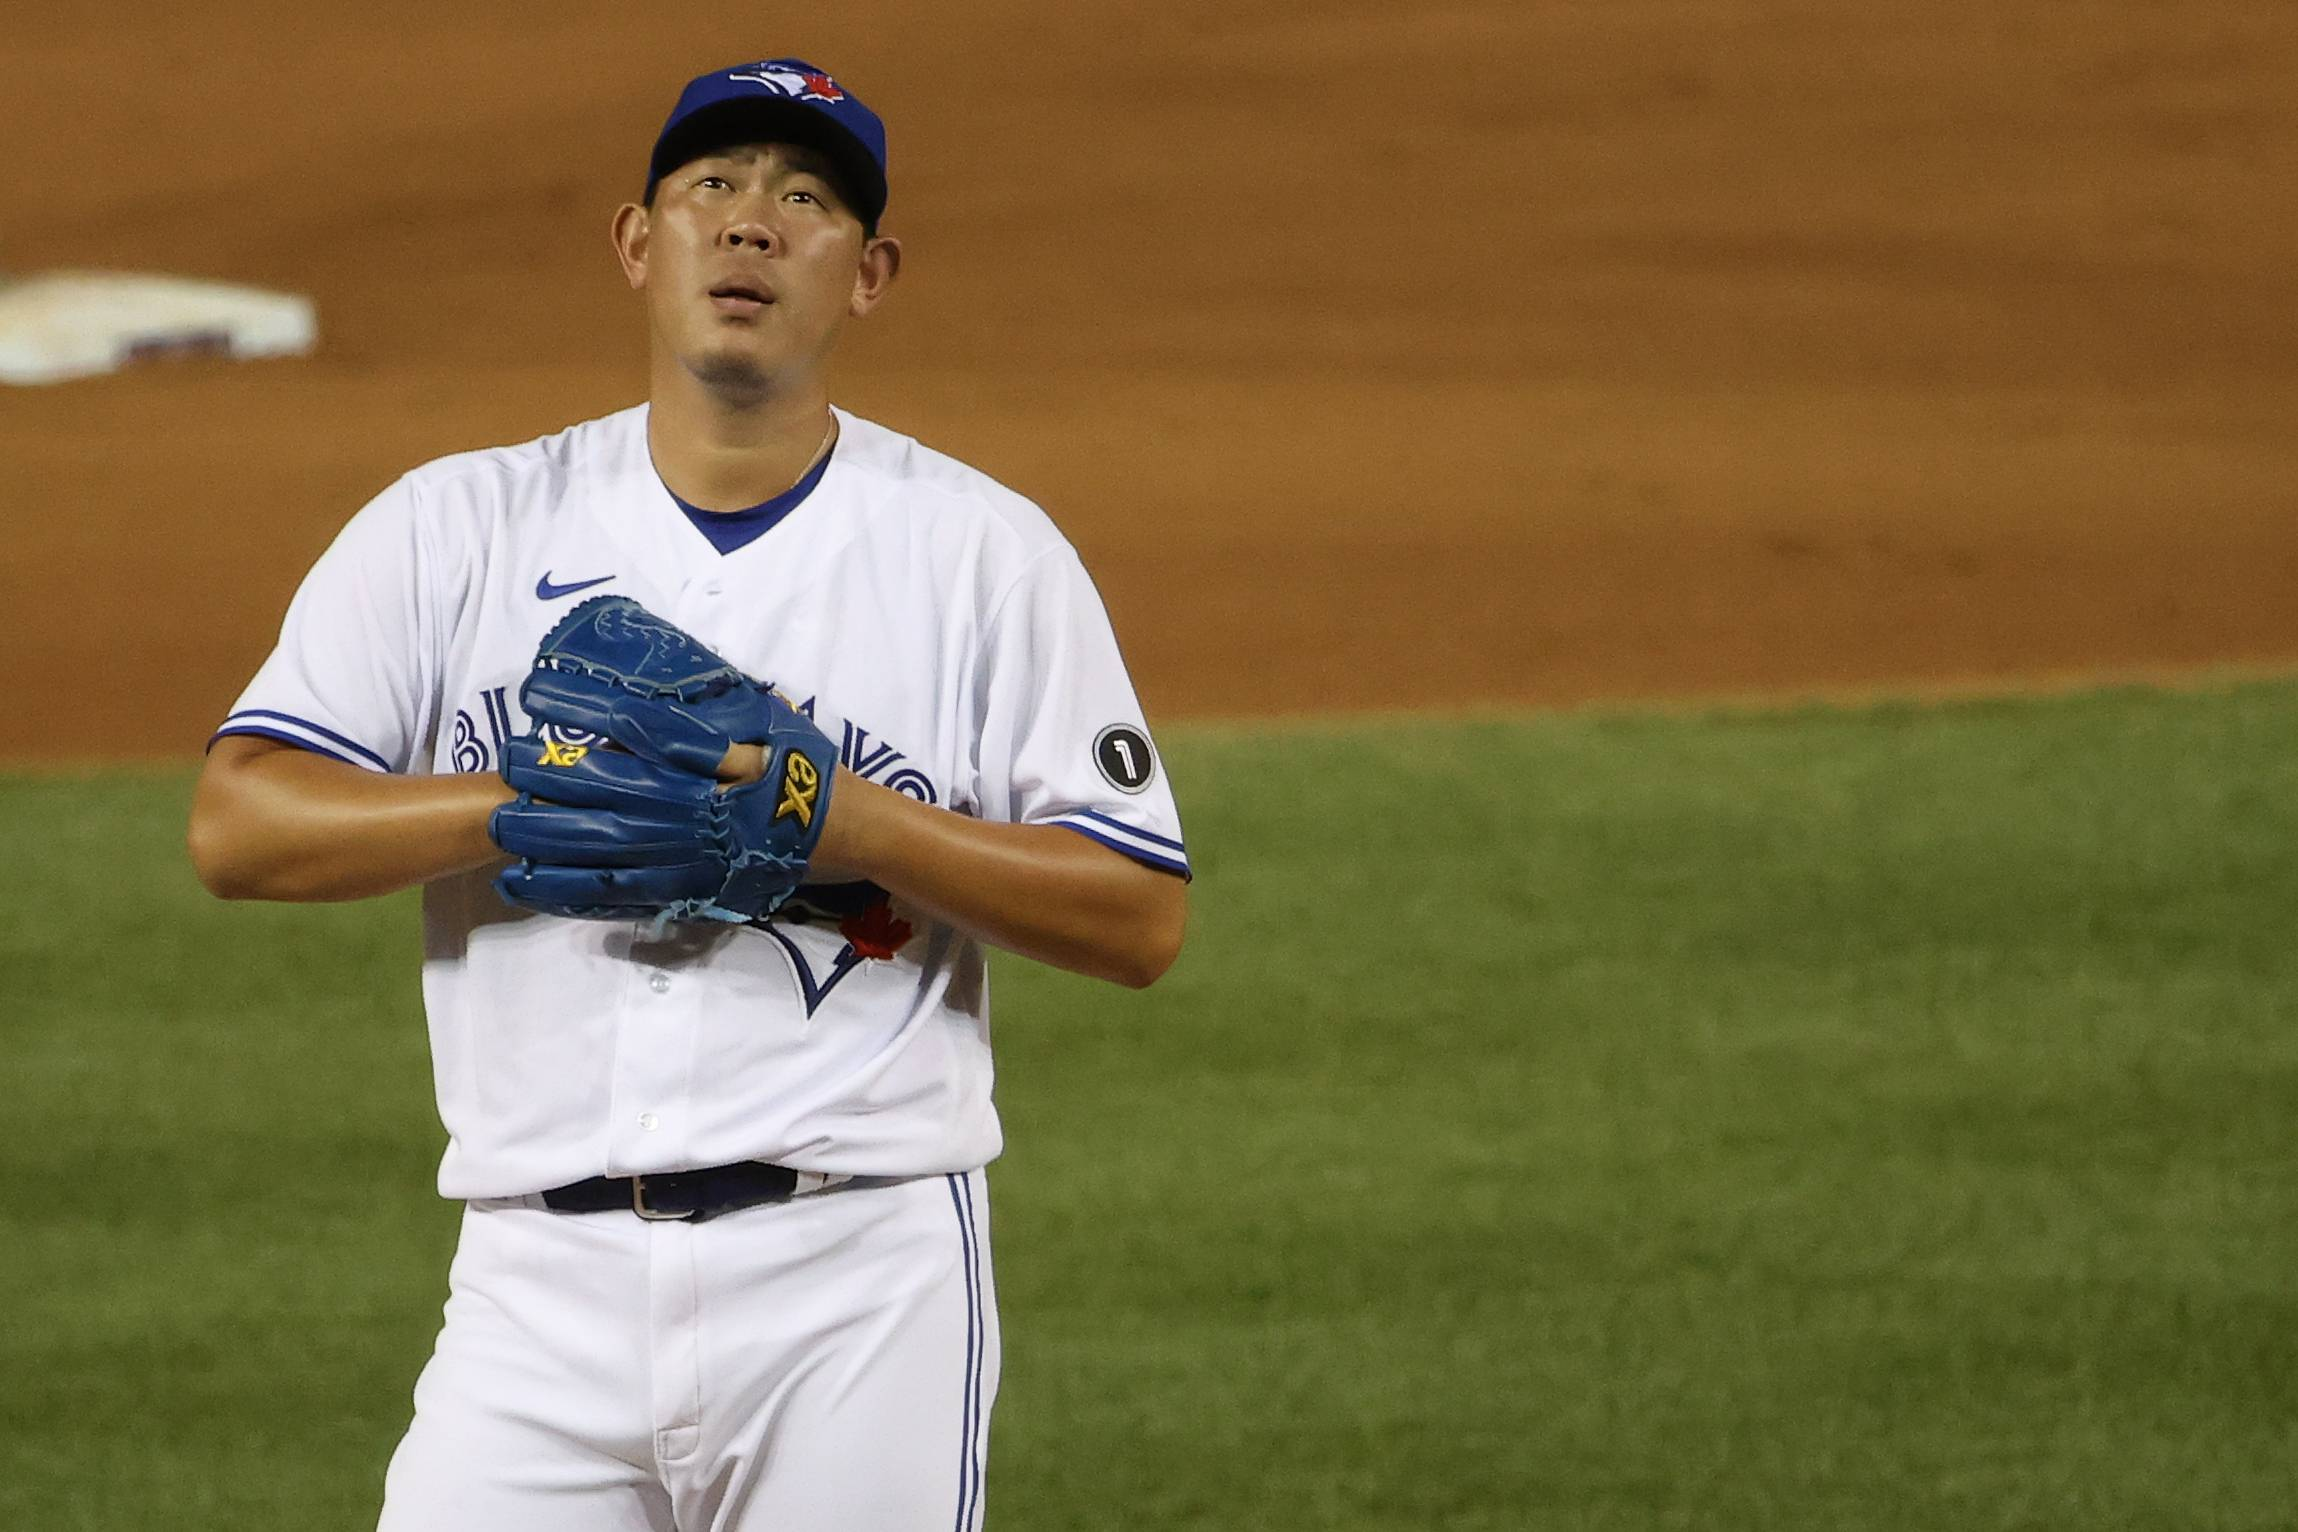 The Blue Jays have released pitcher Shun Yamaguchi after one season. | USA TODAY / VIA REUTERS